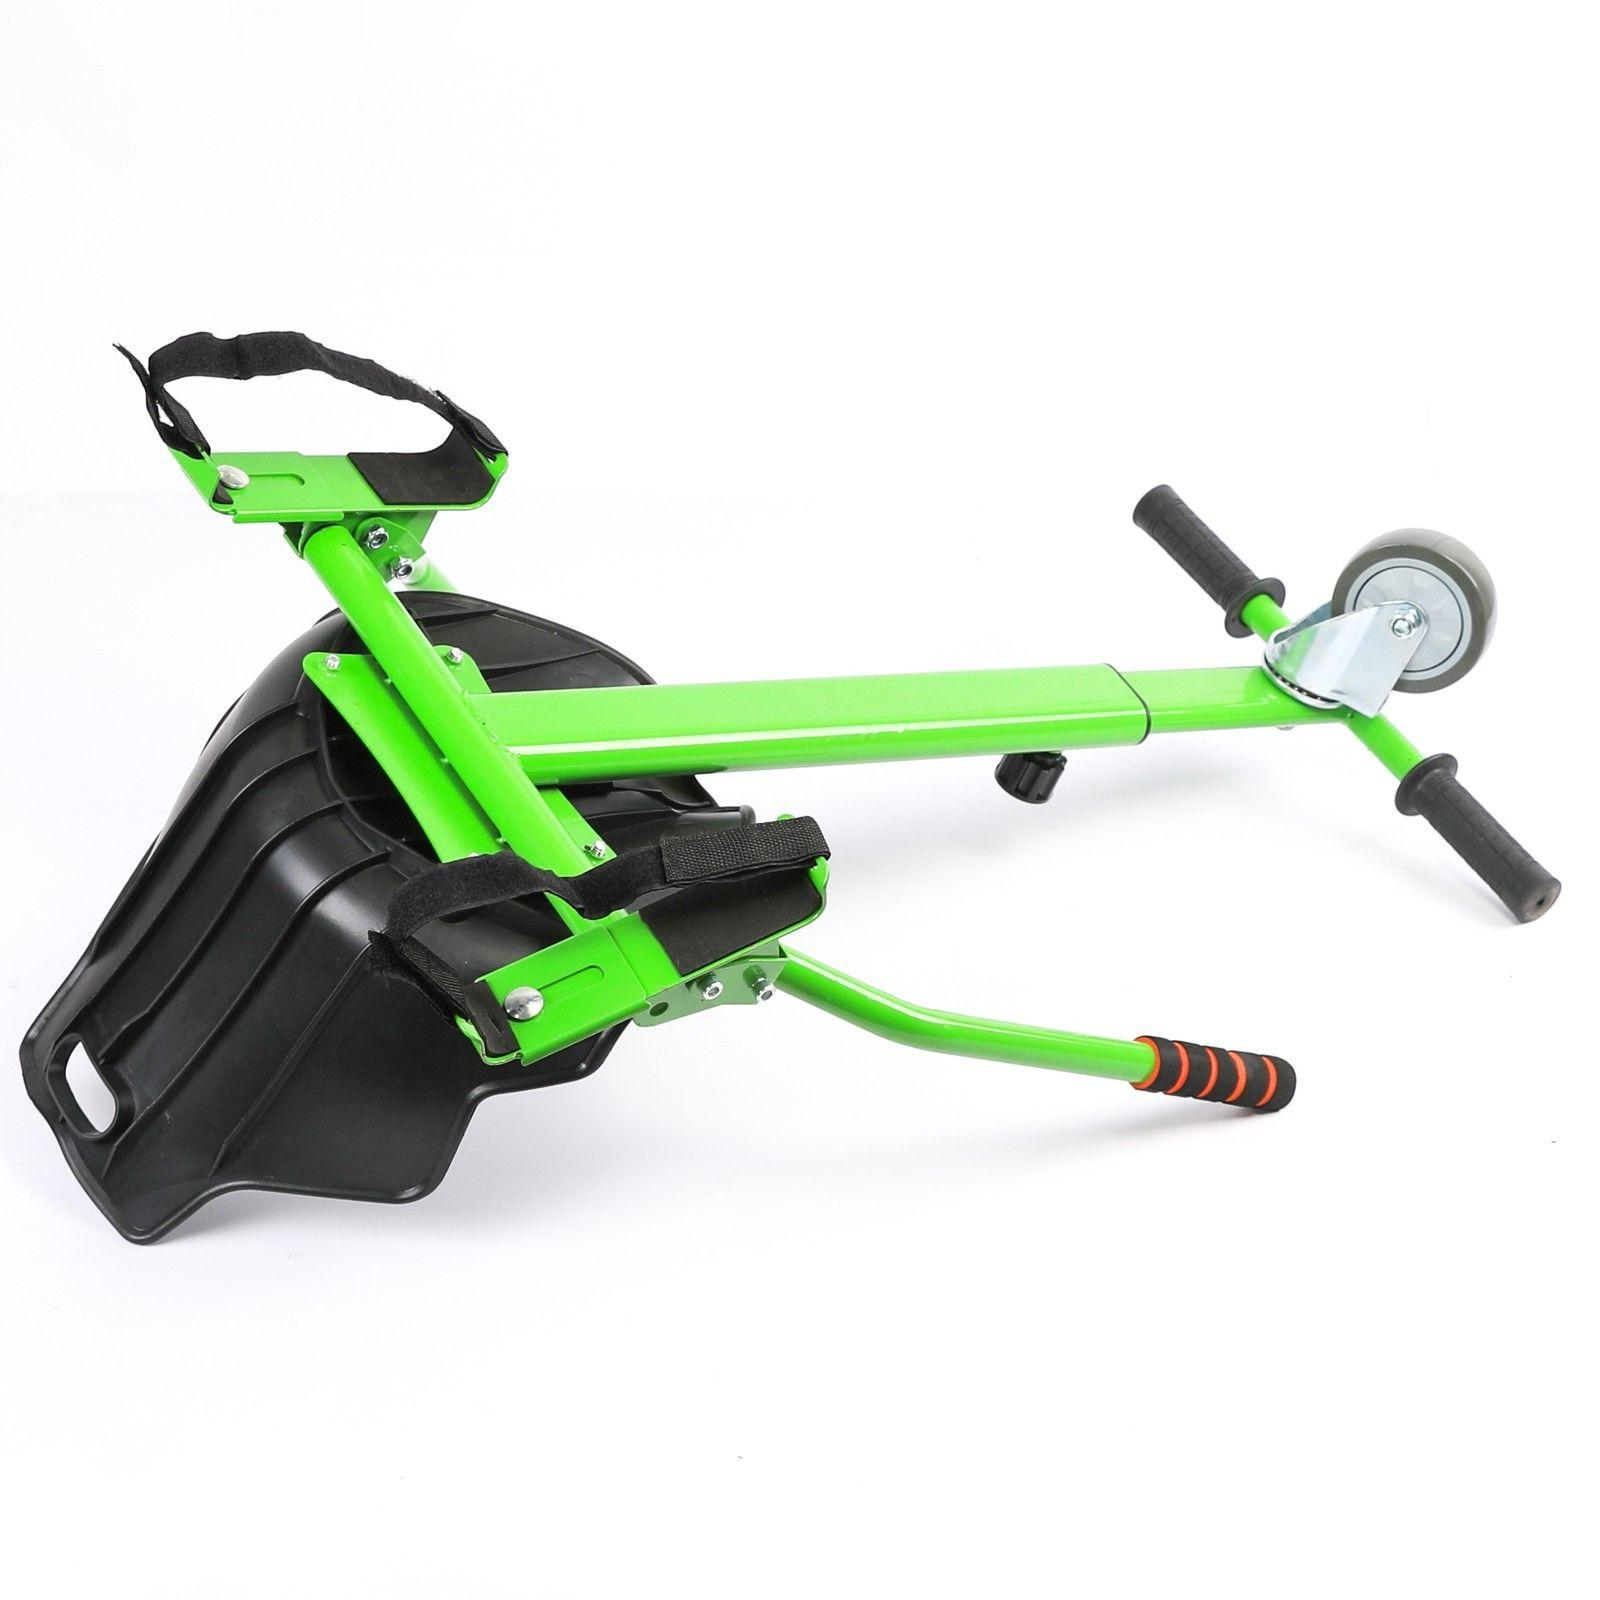 """Adjustable Seat for 6.5"""" Self Balancing Go Kart Scooter Accessories"""